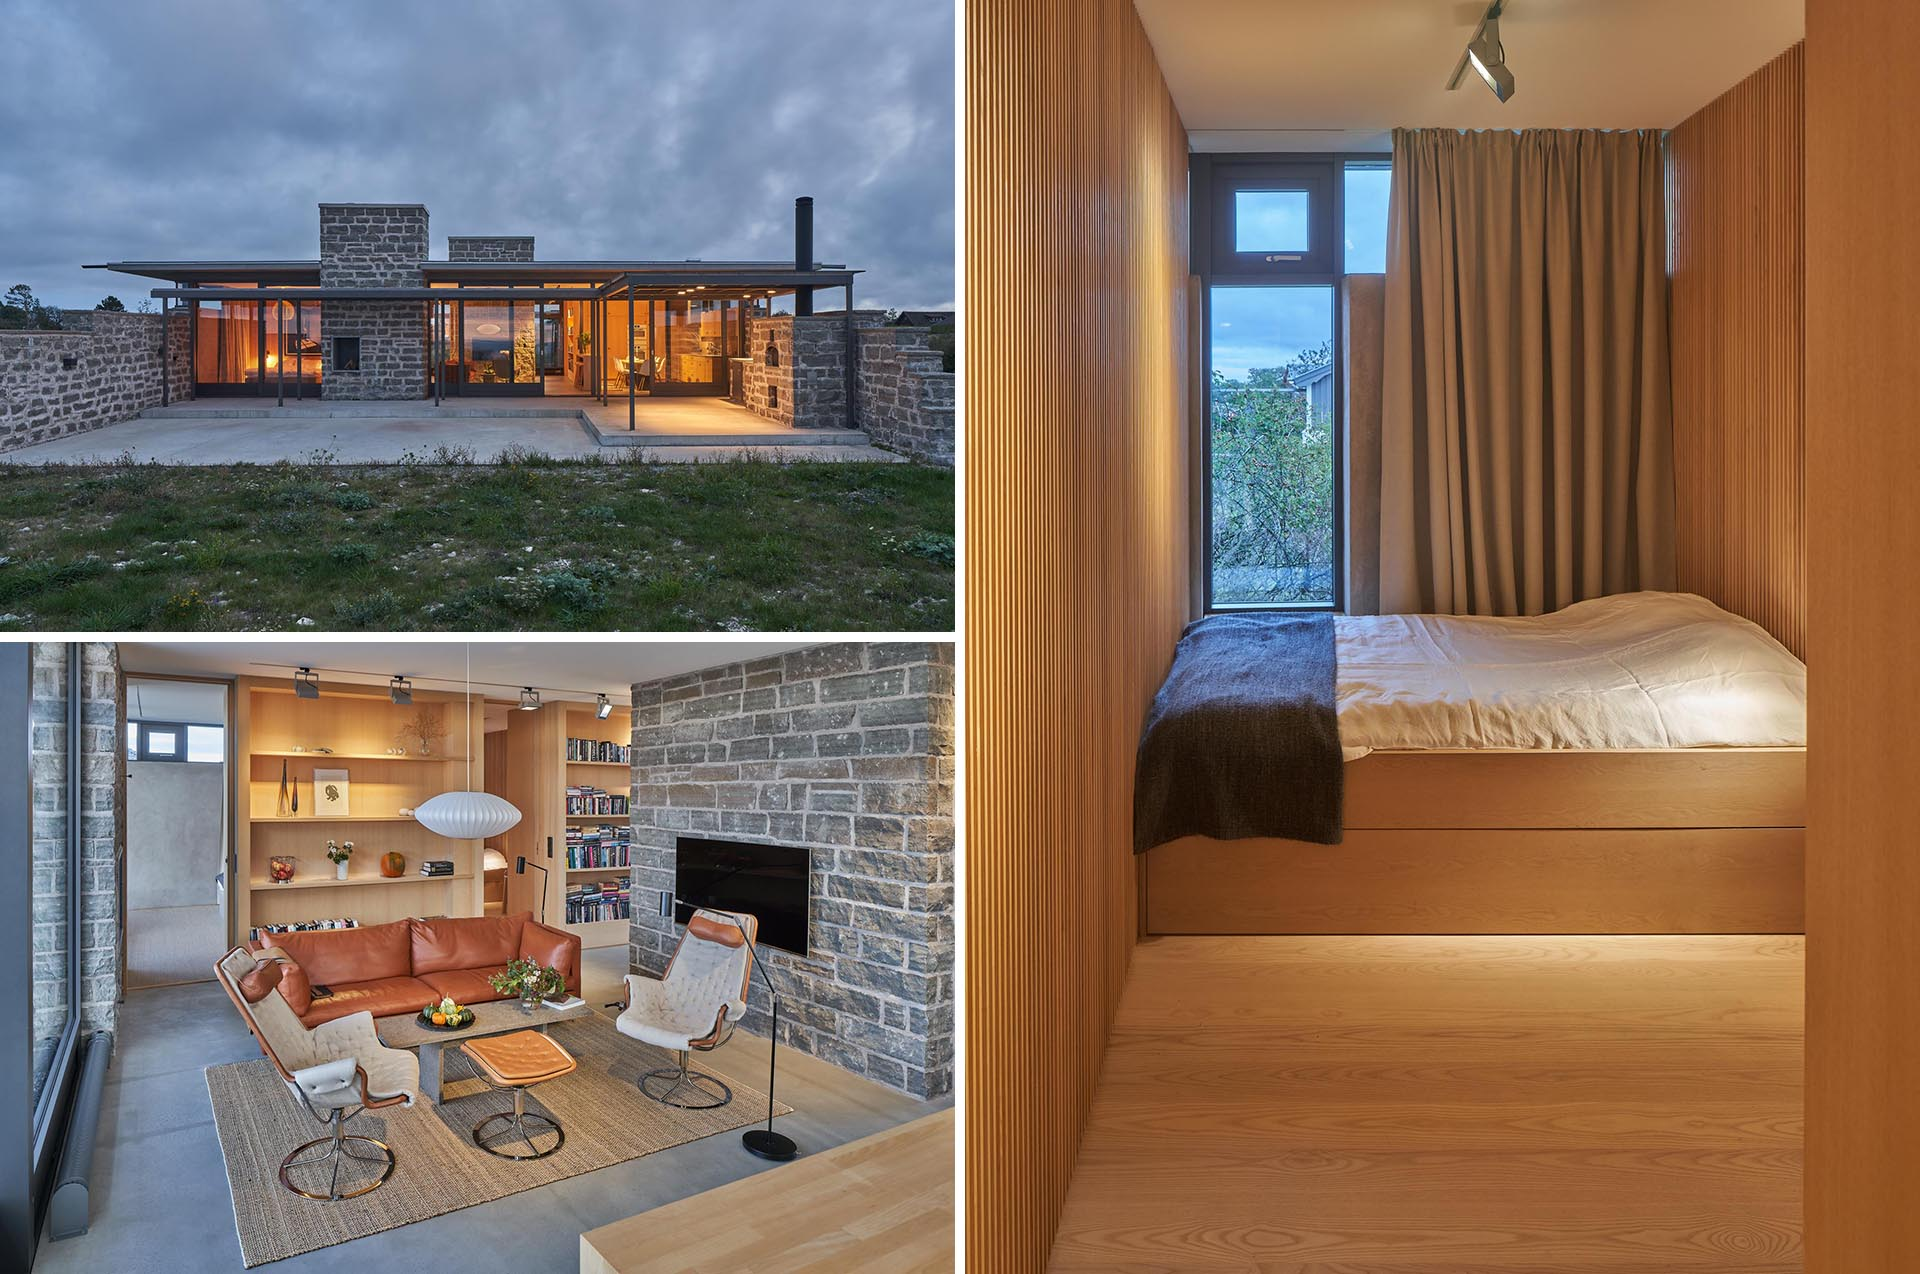 A modern house includes limestone walls, concrete floors, and warm wood.